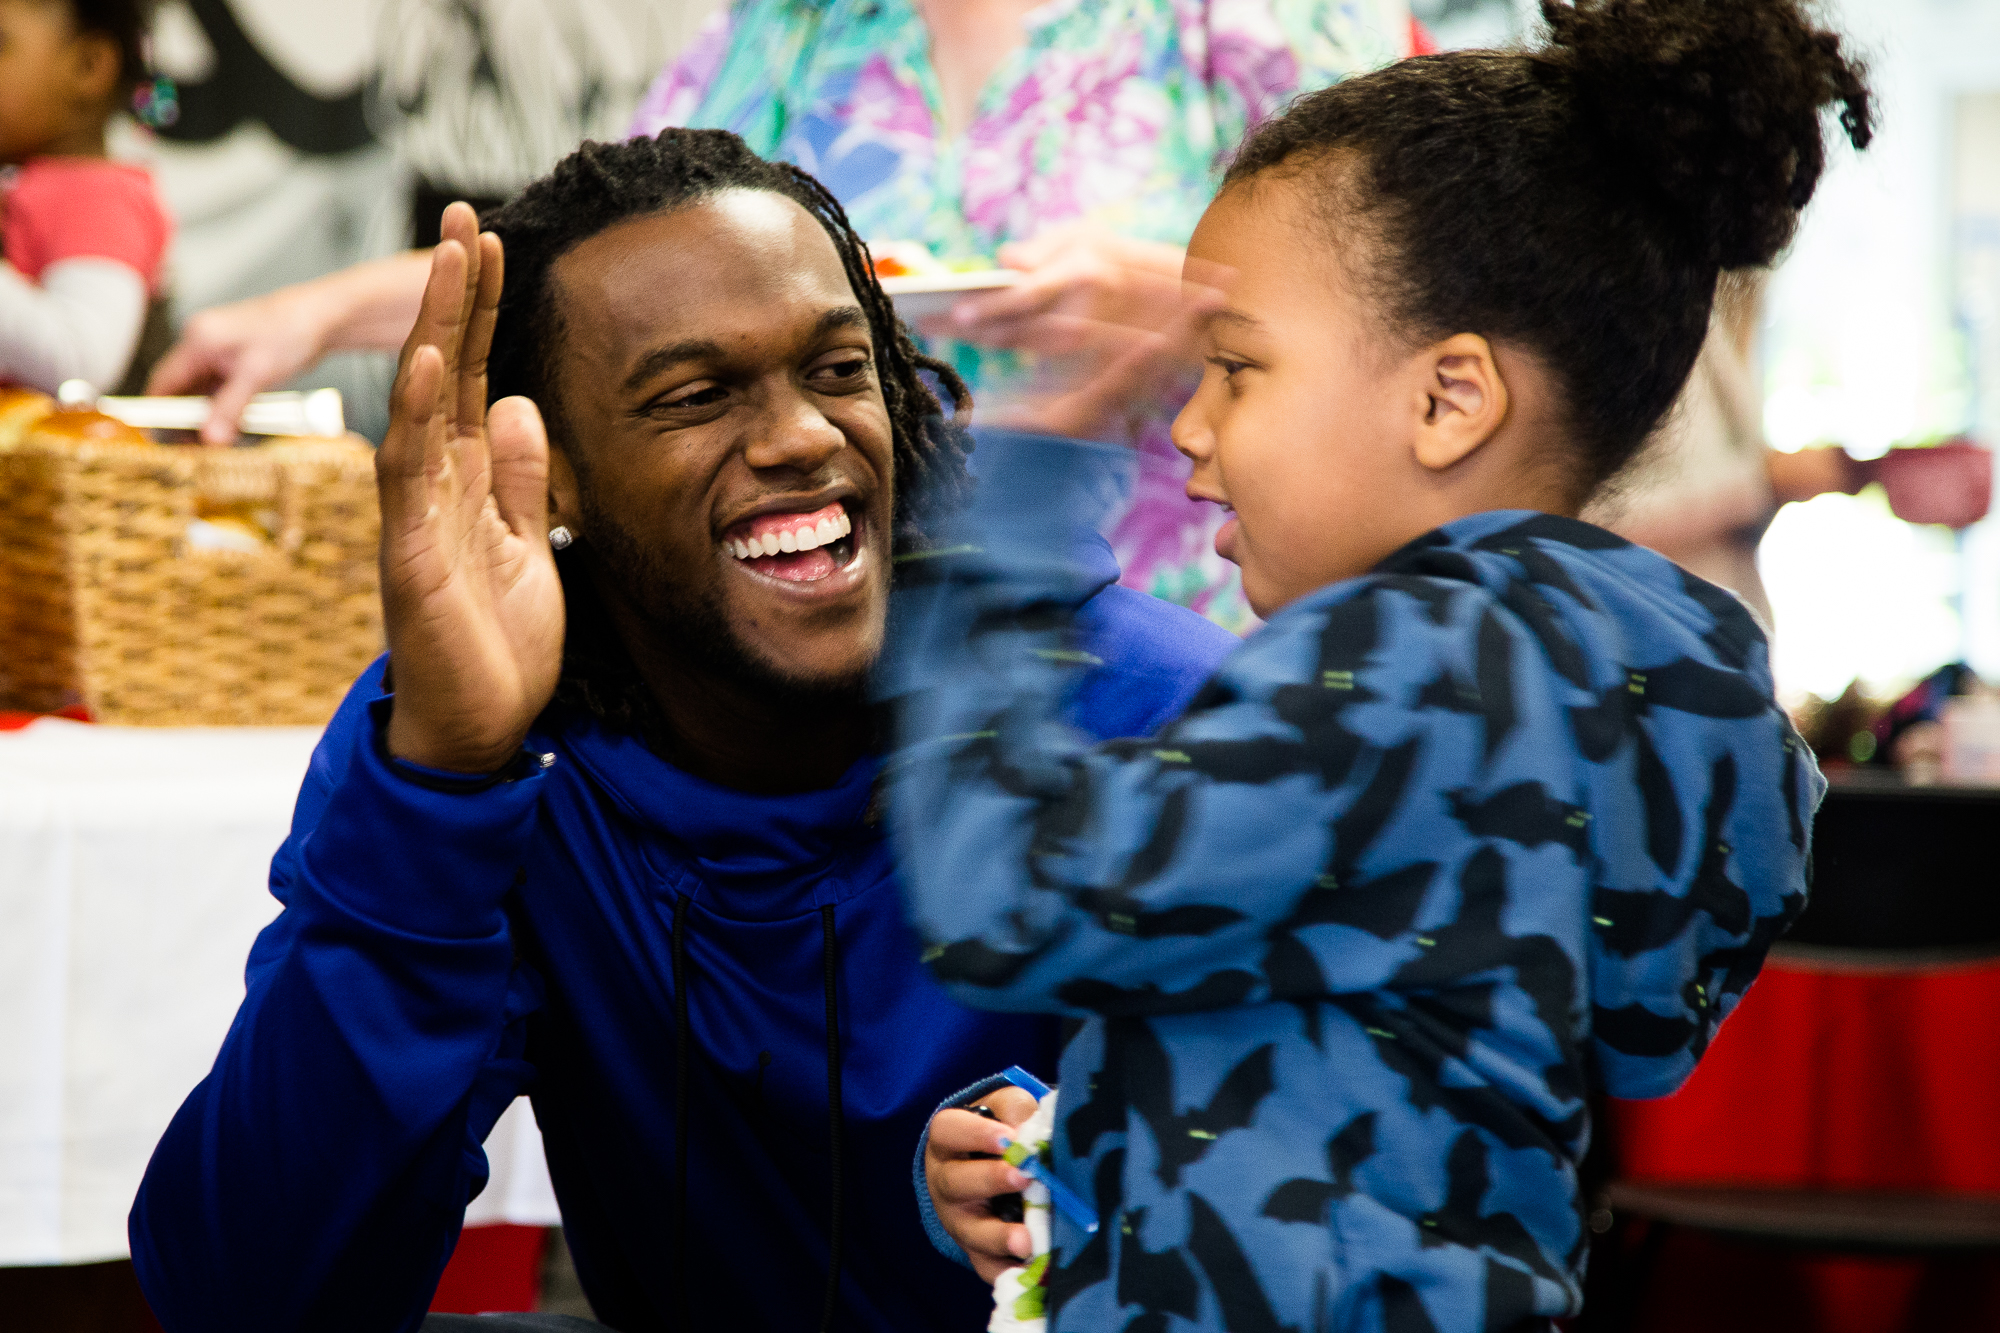 Help Kids Major Leaguer Cameron Maybin Is On A Mission To Help Kids 3bl Media